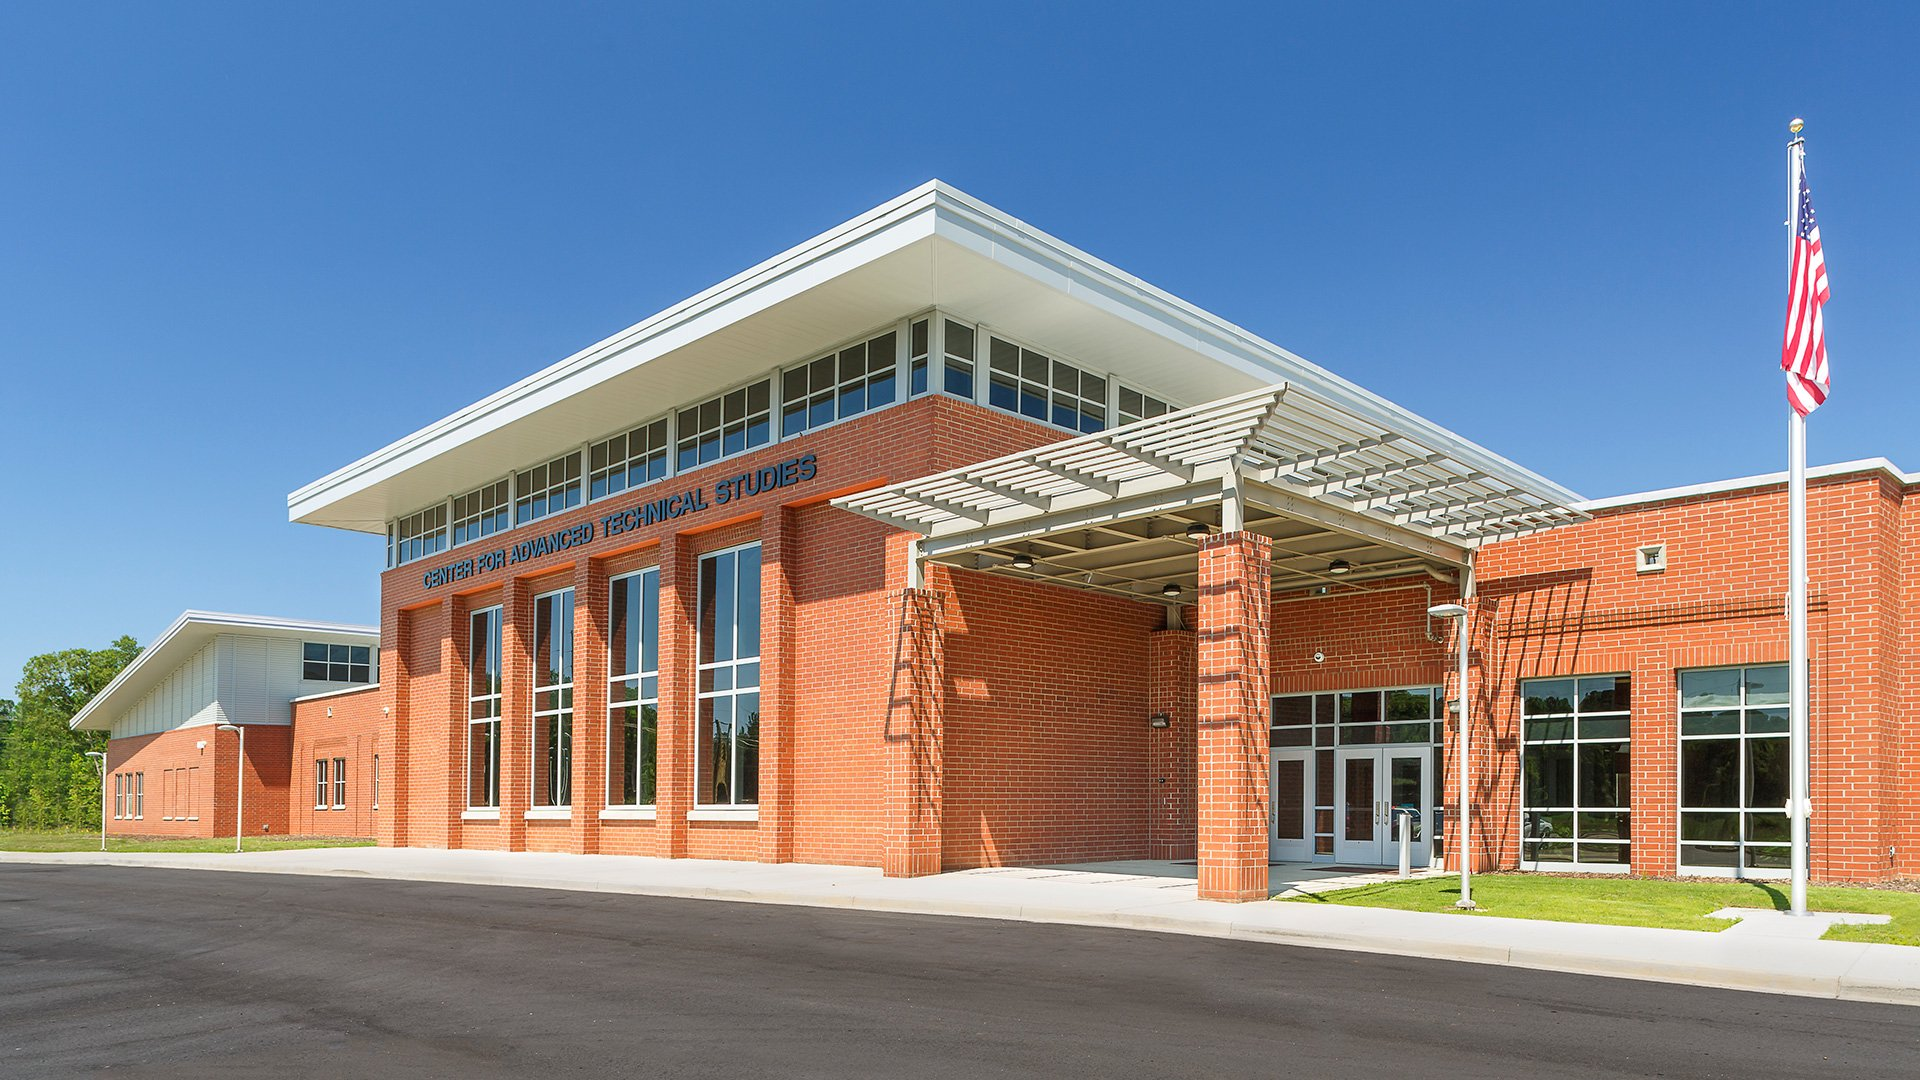 Center For Advanced Technical Studies for School District Five of Lexington and Richland Counties